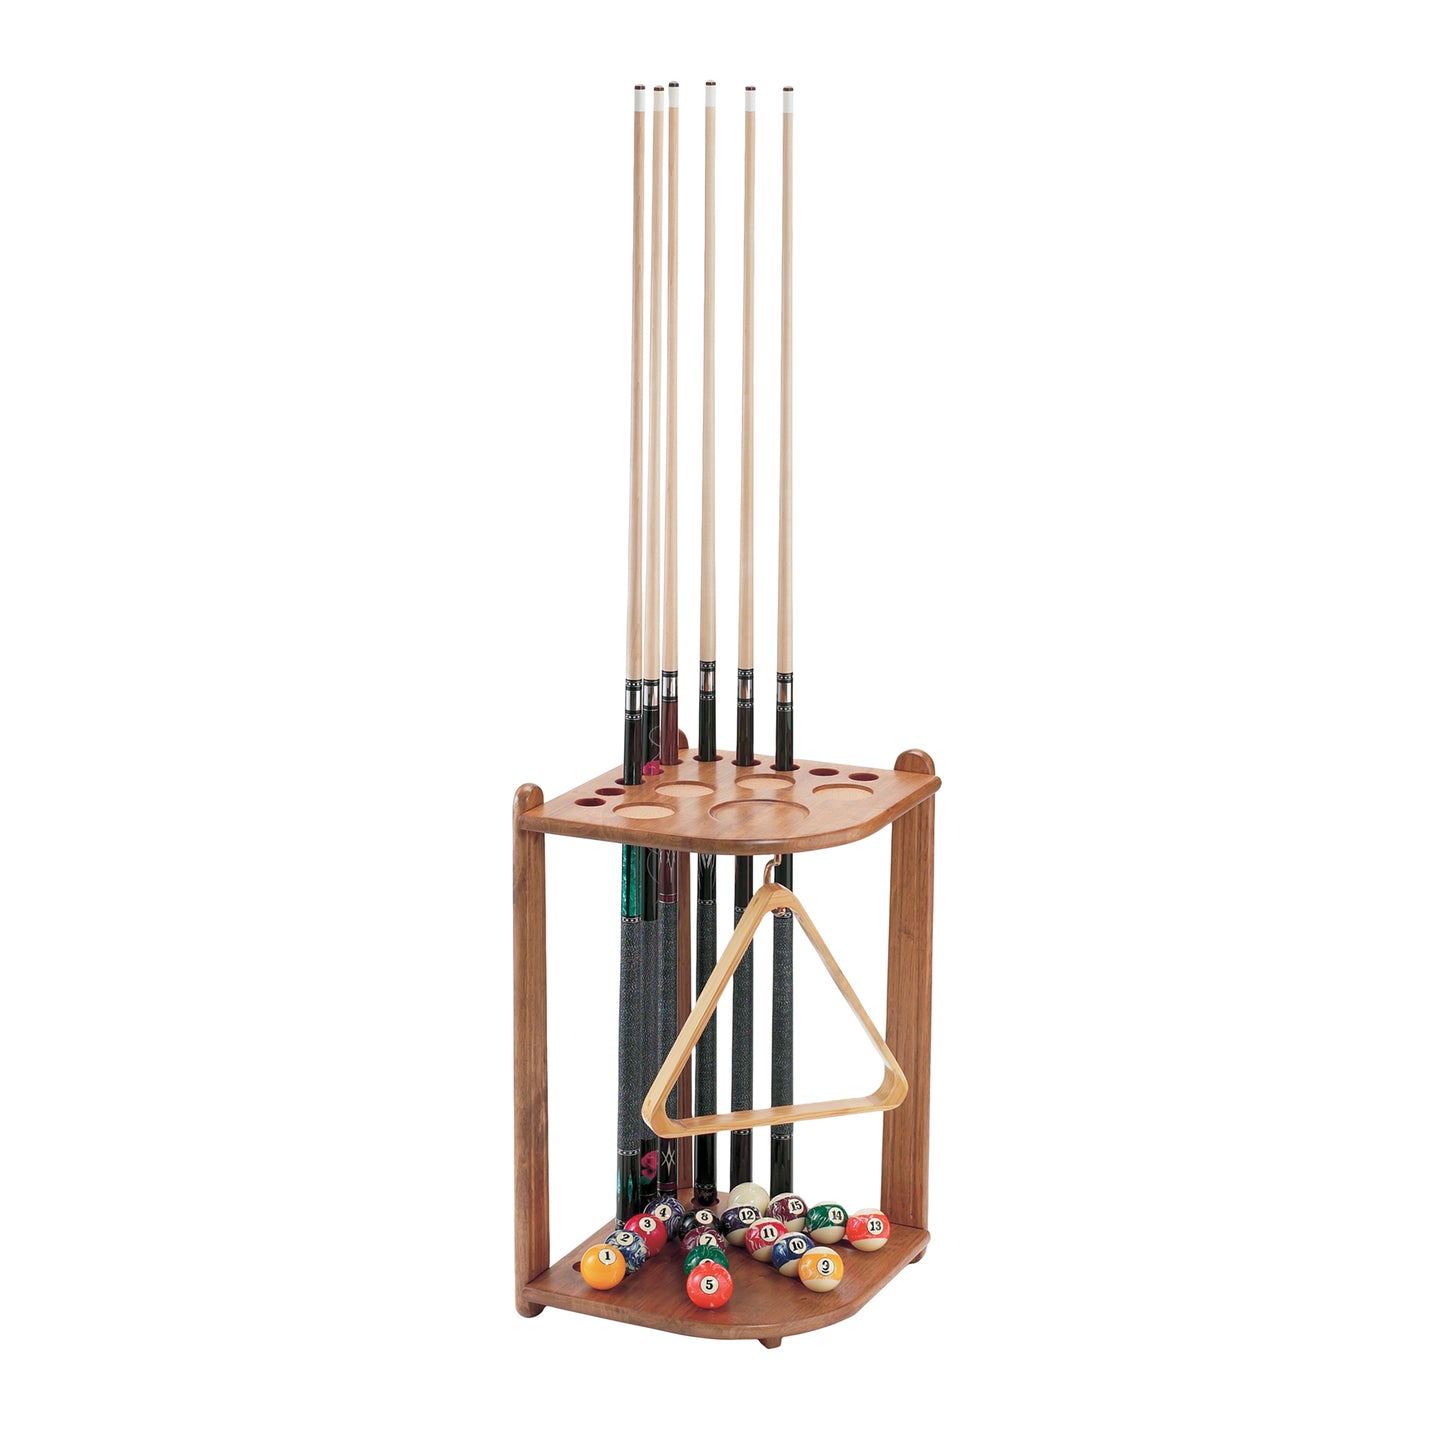 Viper Oak 10 Cue Corner Cue Rack - Game Room Lounge Cue Rack, Viper